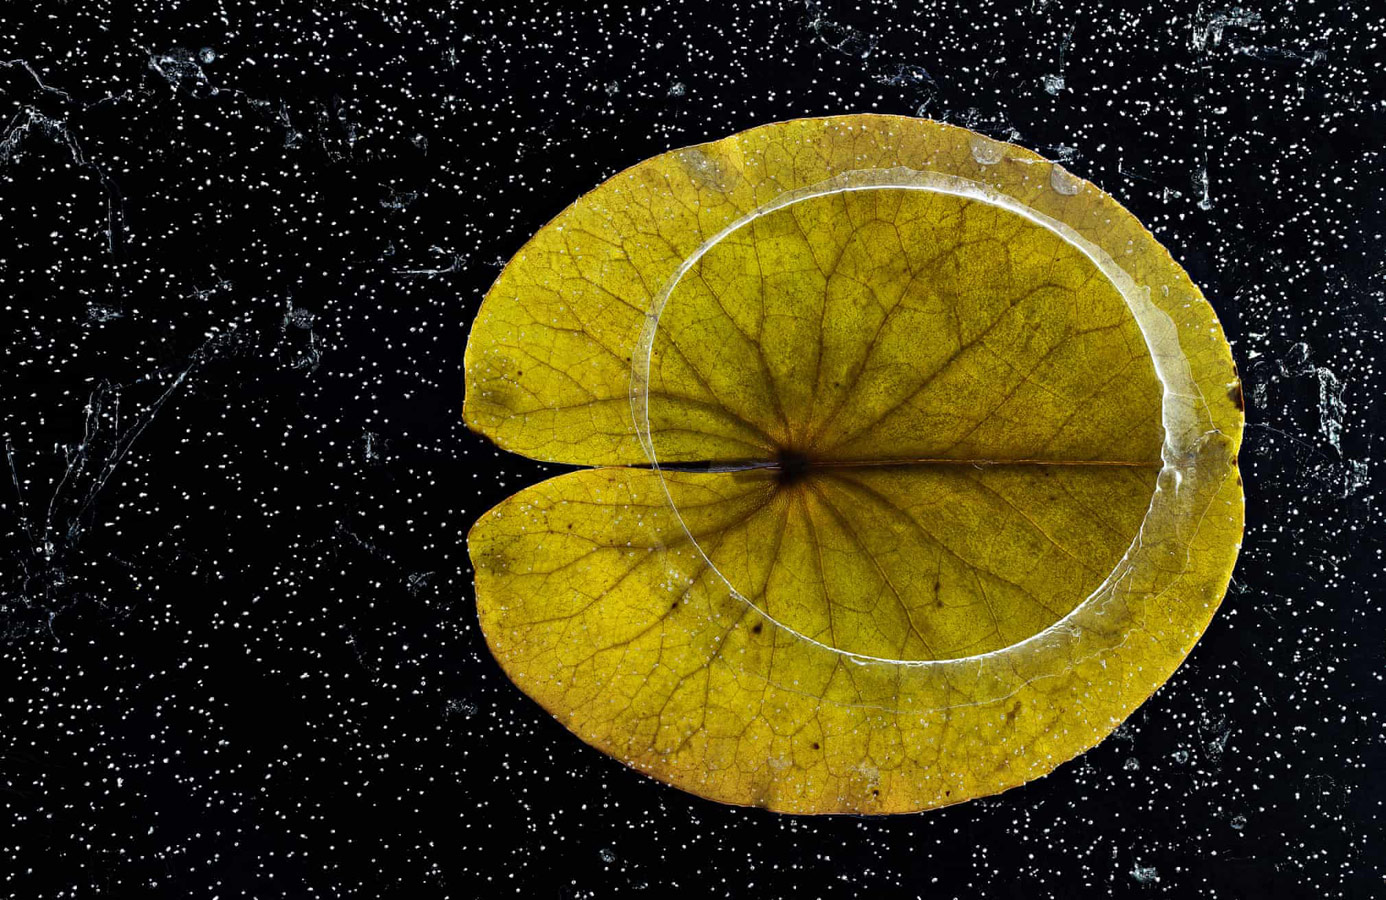 A Lily Pad in the First Ice, © Hannu Ahonen (FI), Winner Plants and Fungi Category, GDT European Wildlife Photographer of the Year